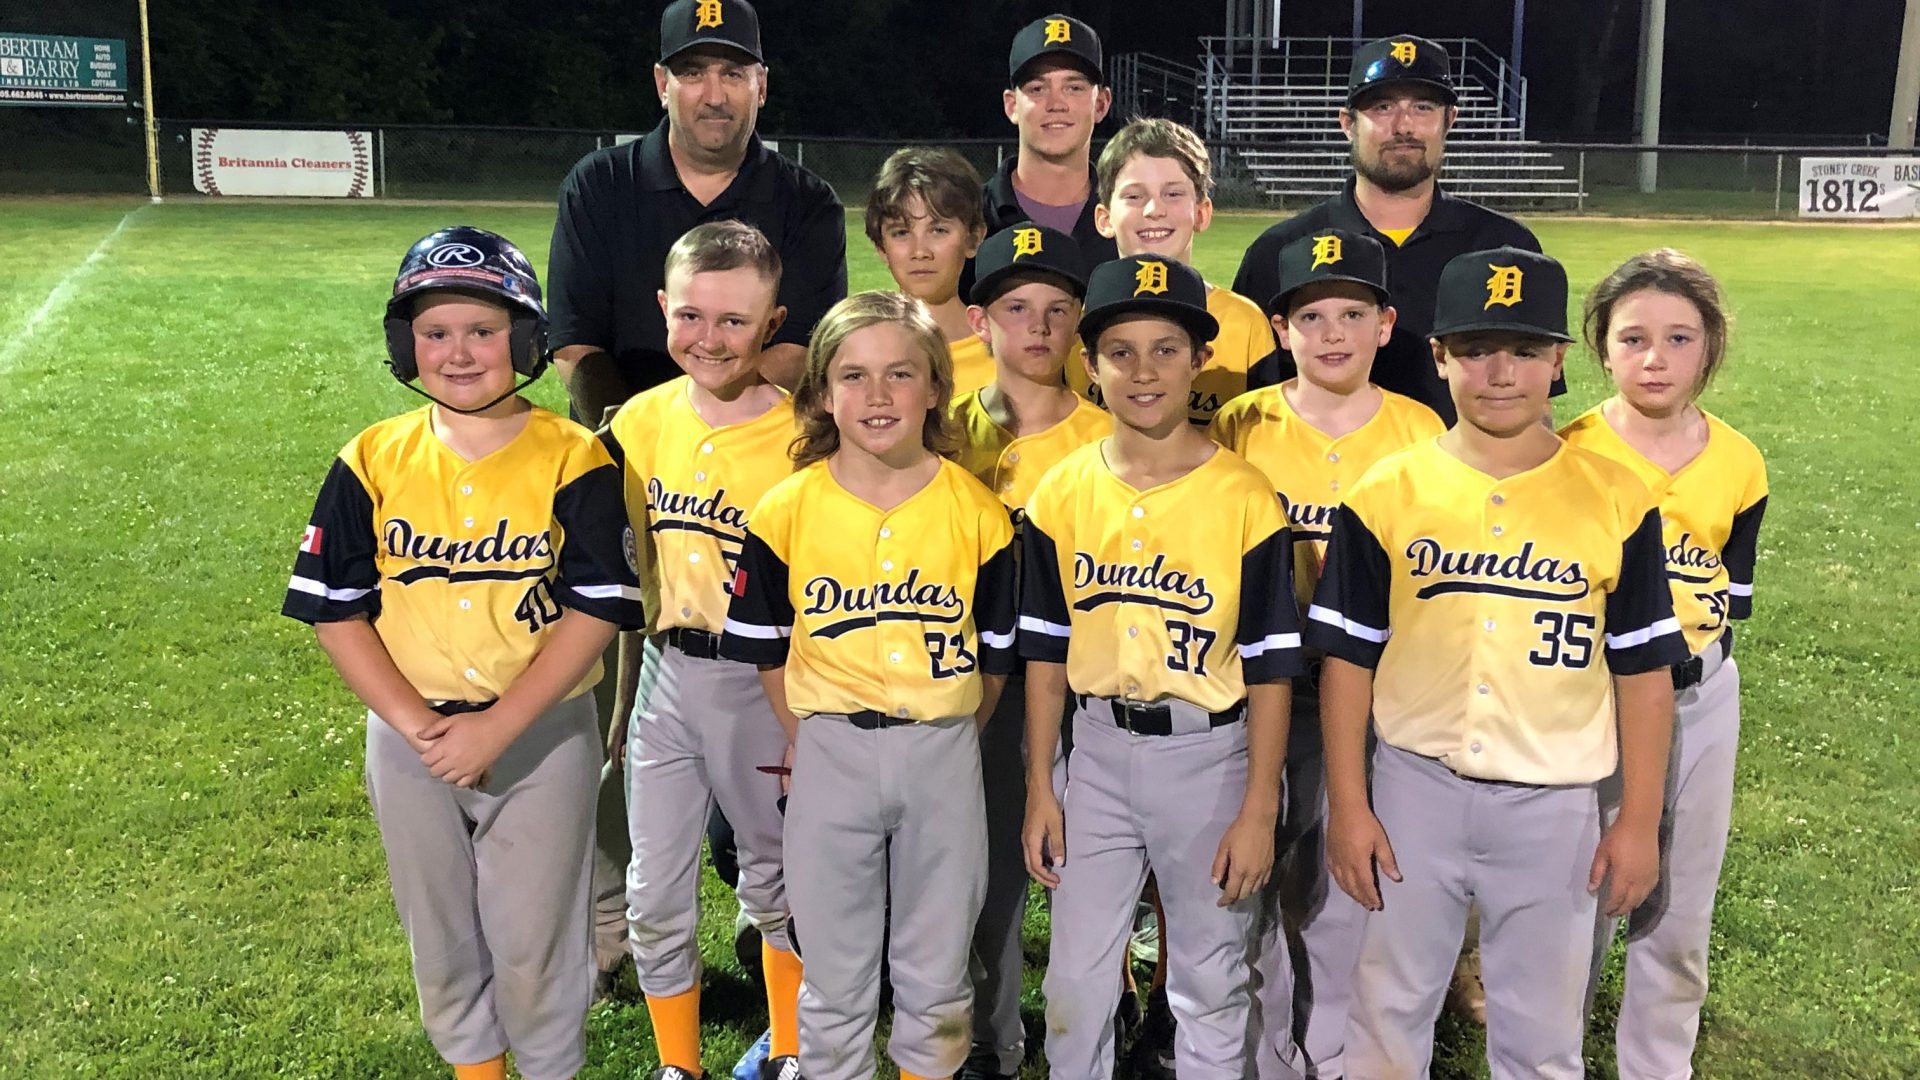 The Dundas Minor All-Star Team, had a great experience, playing in the Minor District Tournament in Stoney Creek from July 12-18.